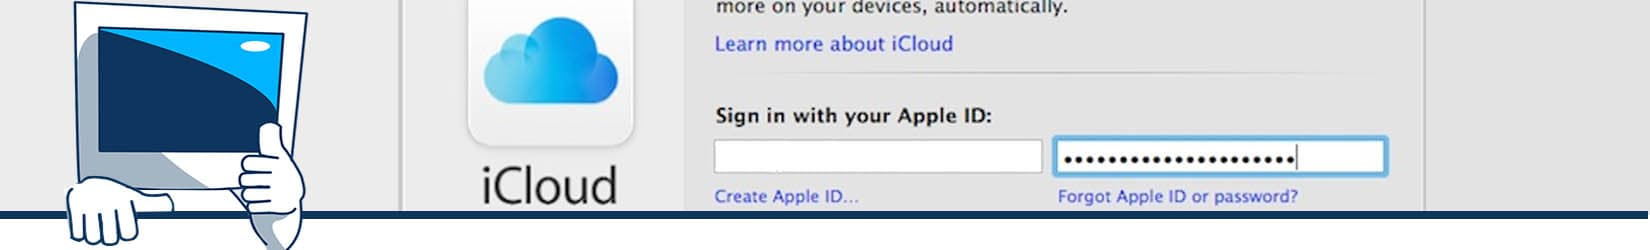 crear id de apple